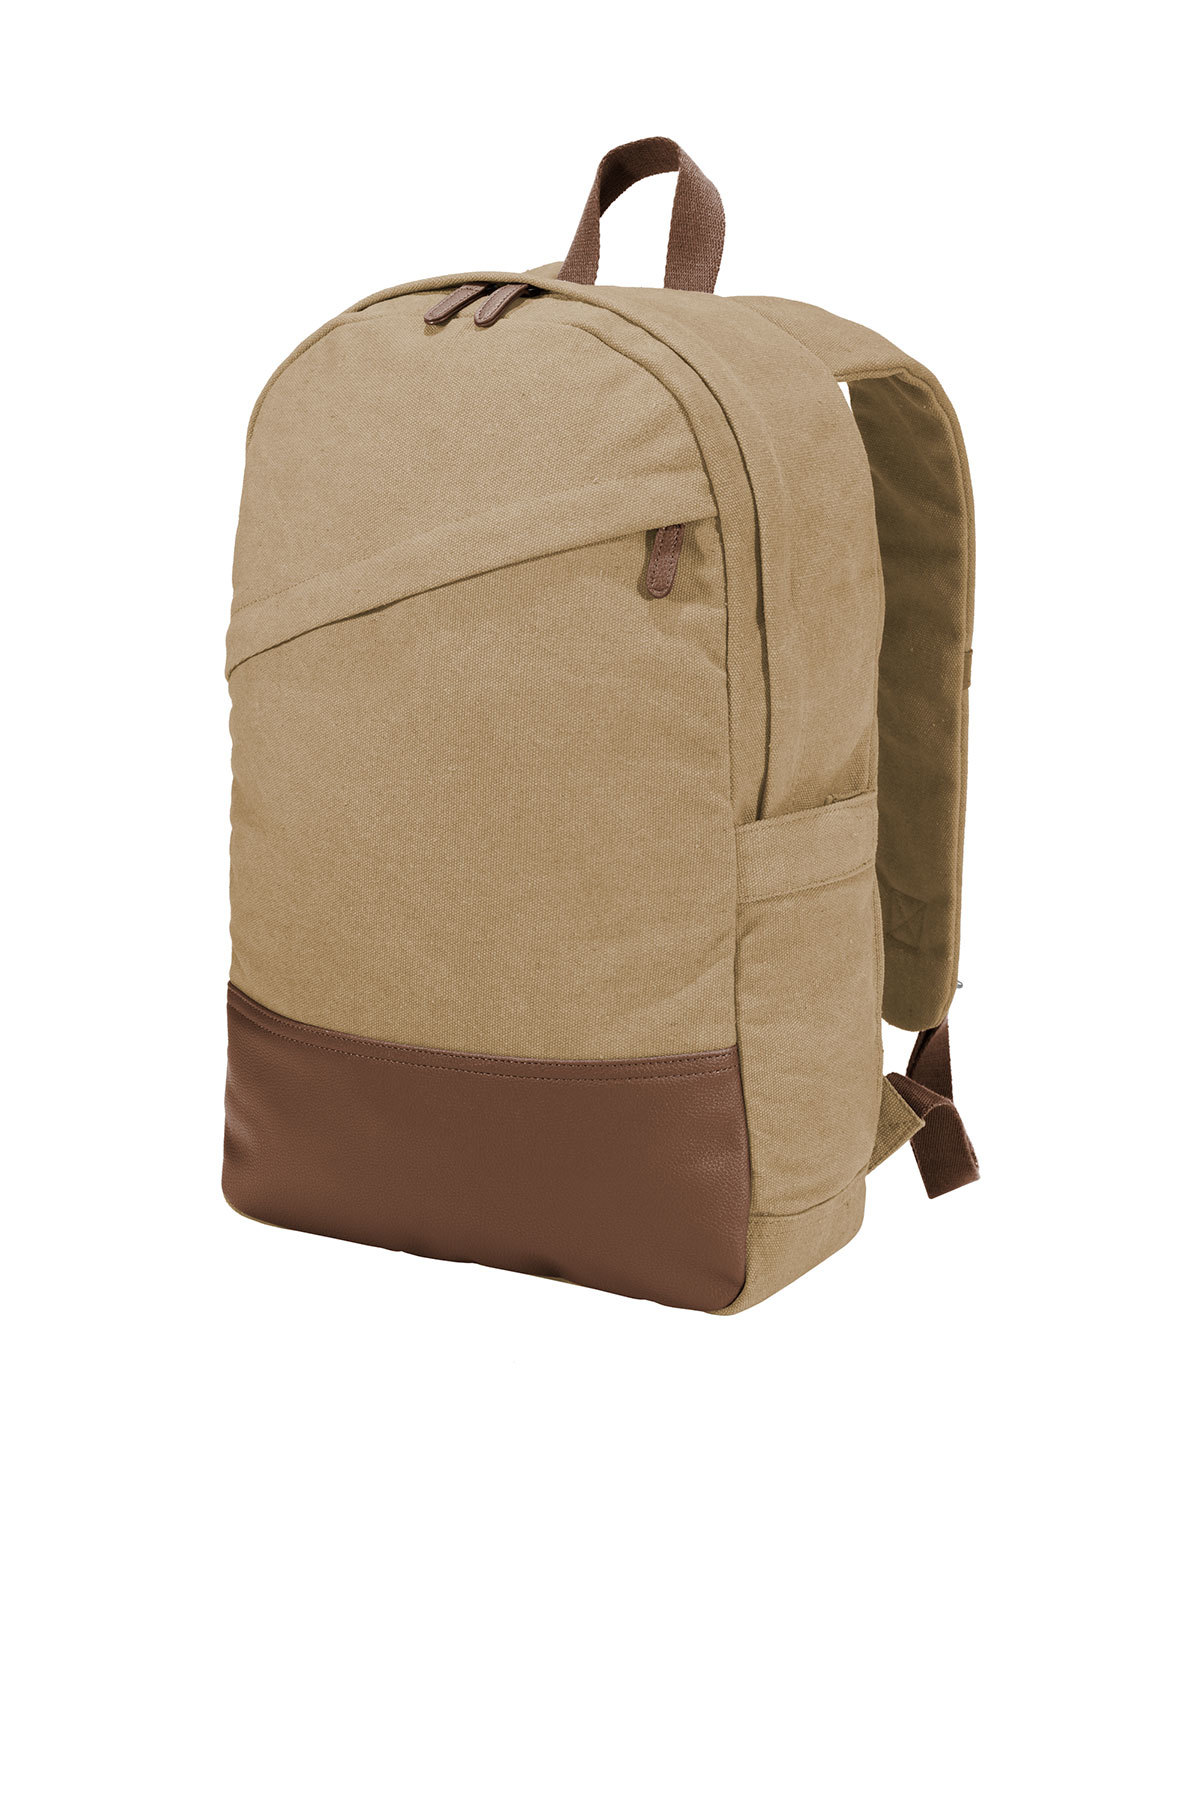 0bb39100ee Port Authority ® Cotton Canvas Backpack